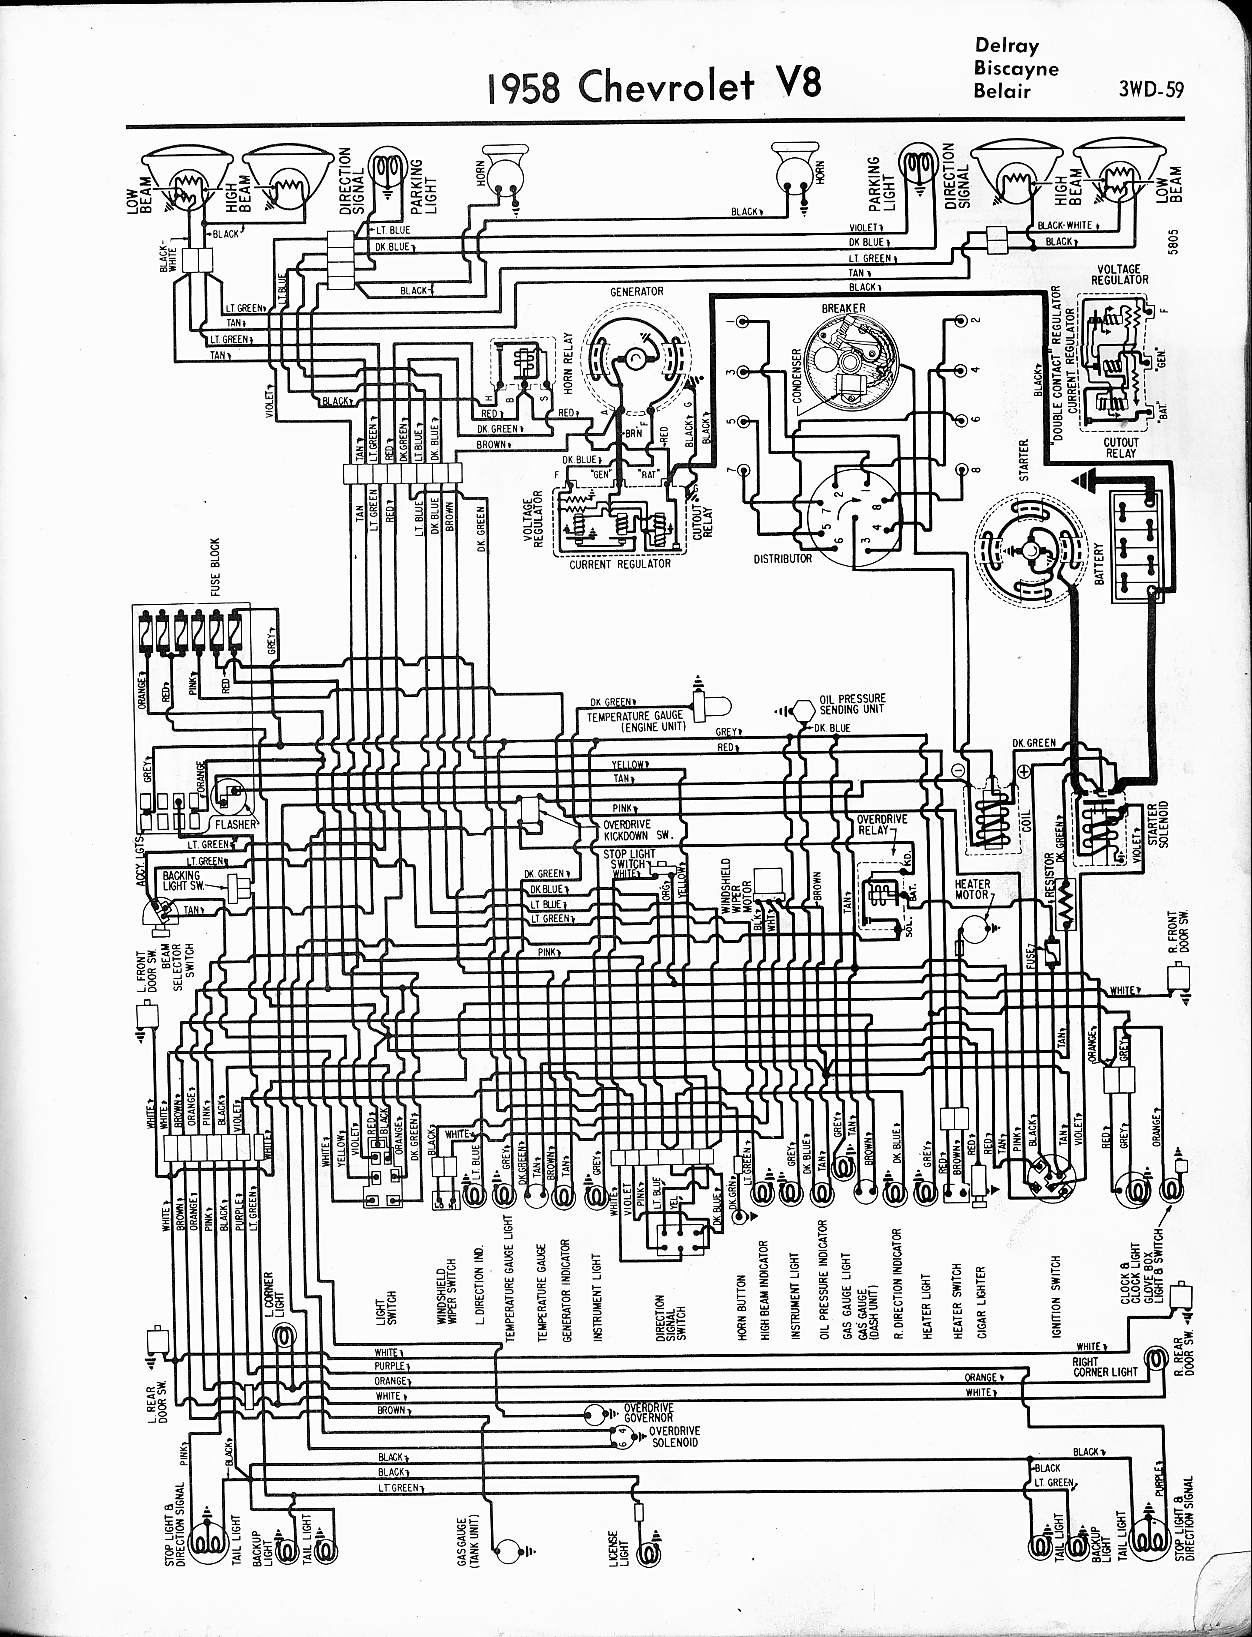 hight resolution of 57 65 chevy wiring diagrams 1967 chevy impala wiring diagram wiring diagram for 1960 chevy impala